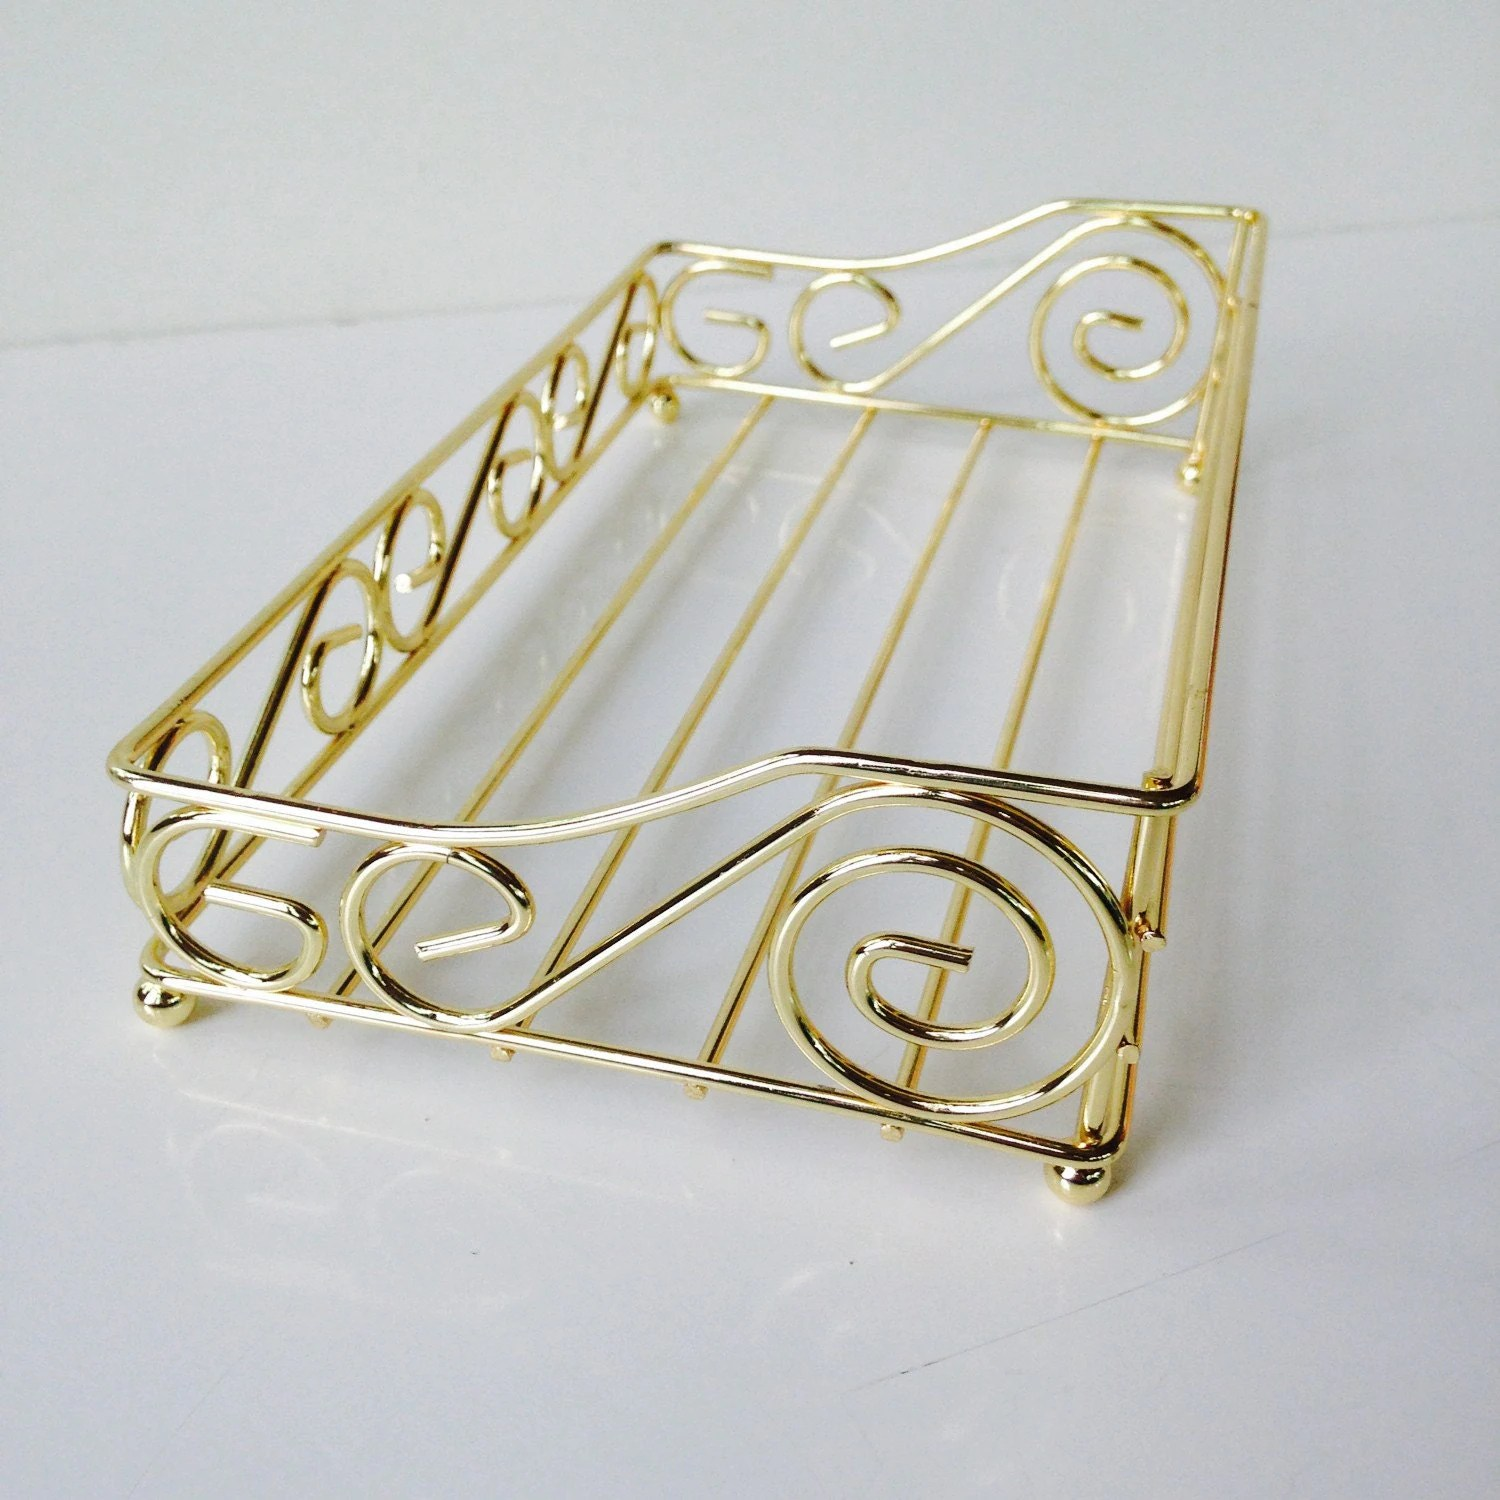 Hollywood regency gold towel powder bathroom napkin holder for Bathroom napkin holder